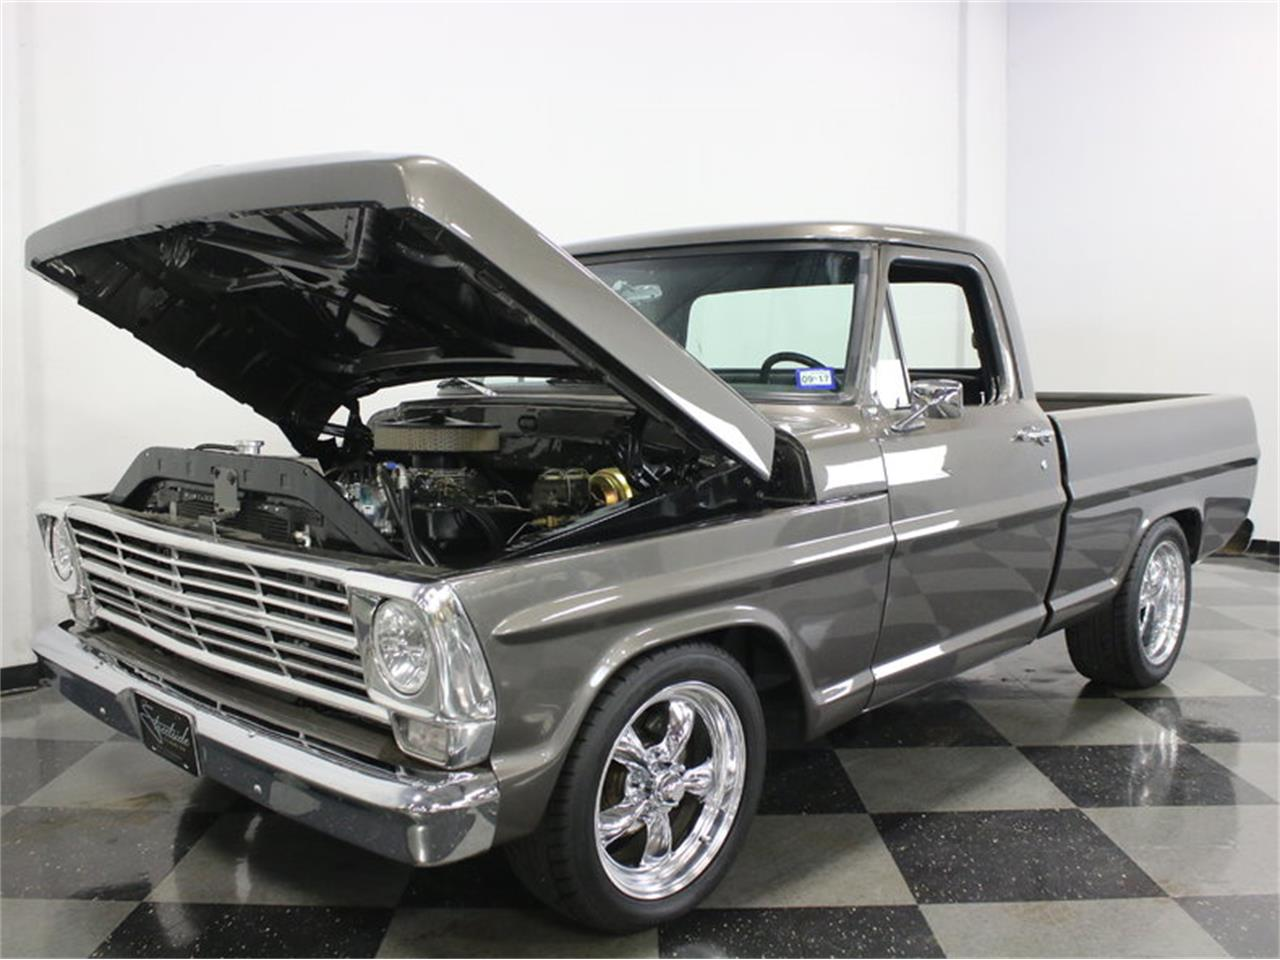 1969 Ford F100 For Sale Cc 956435 F 100 Custom Large Picture Of 4899500 Khzn